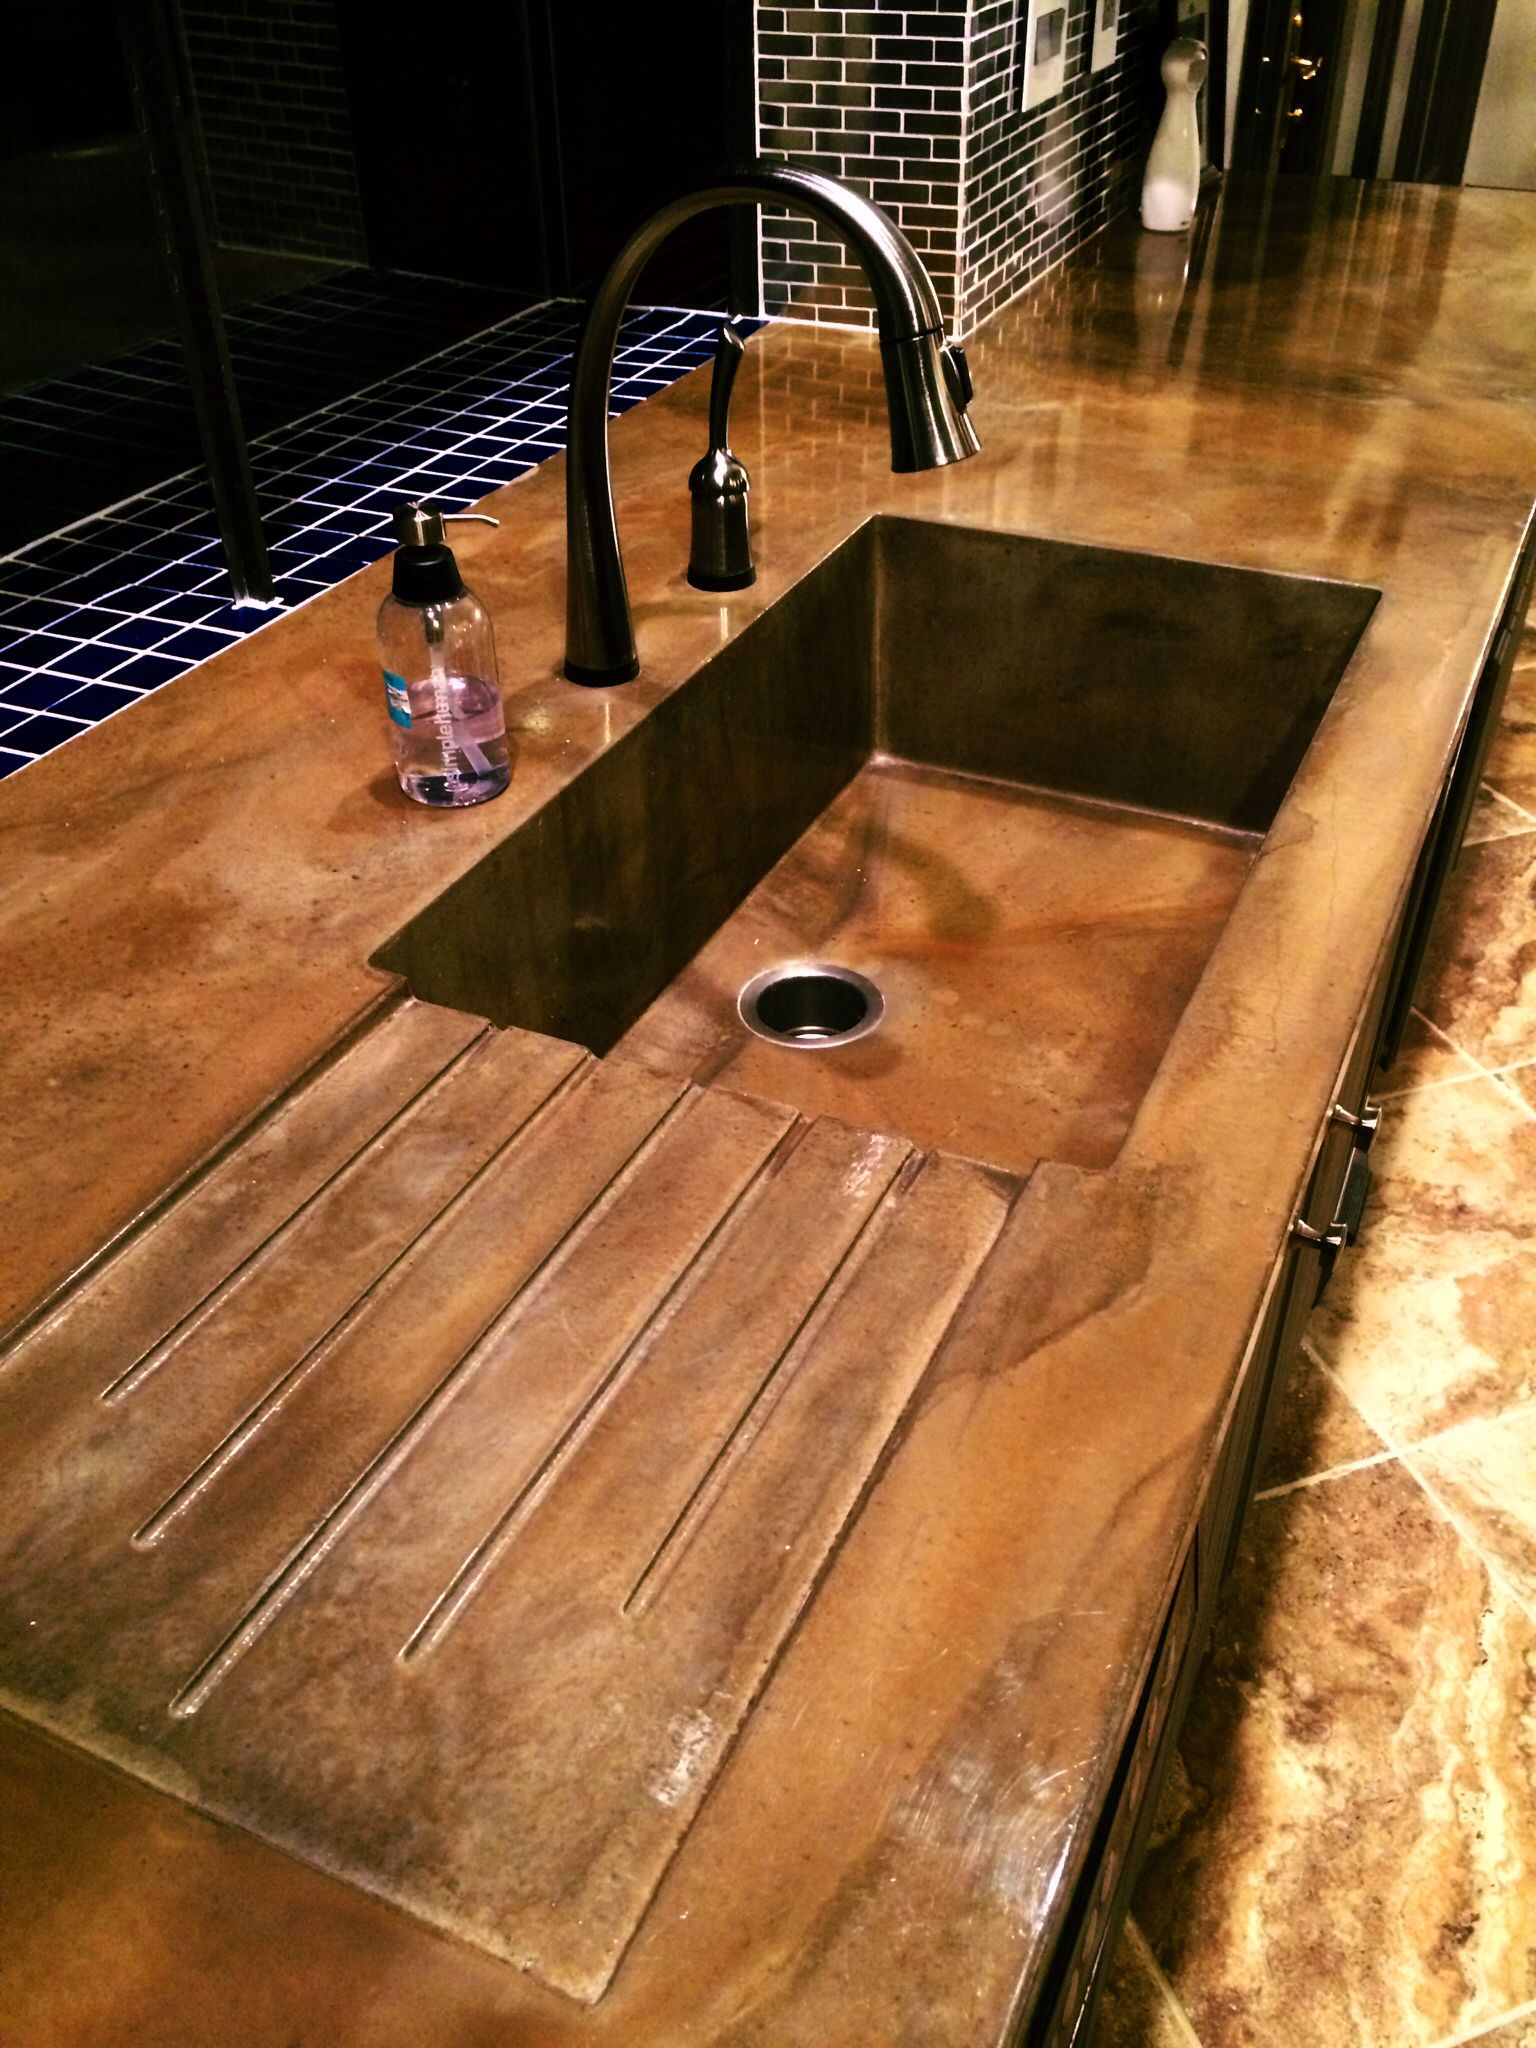 Concrete kitchen sink with drain board Visit NuConcrete for